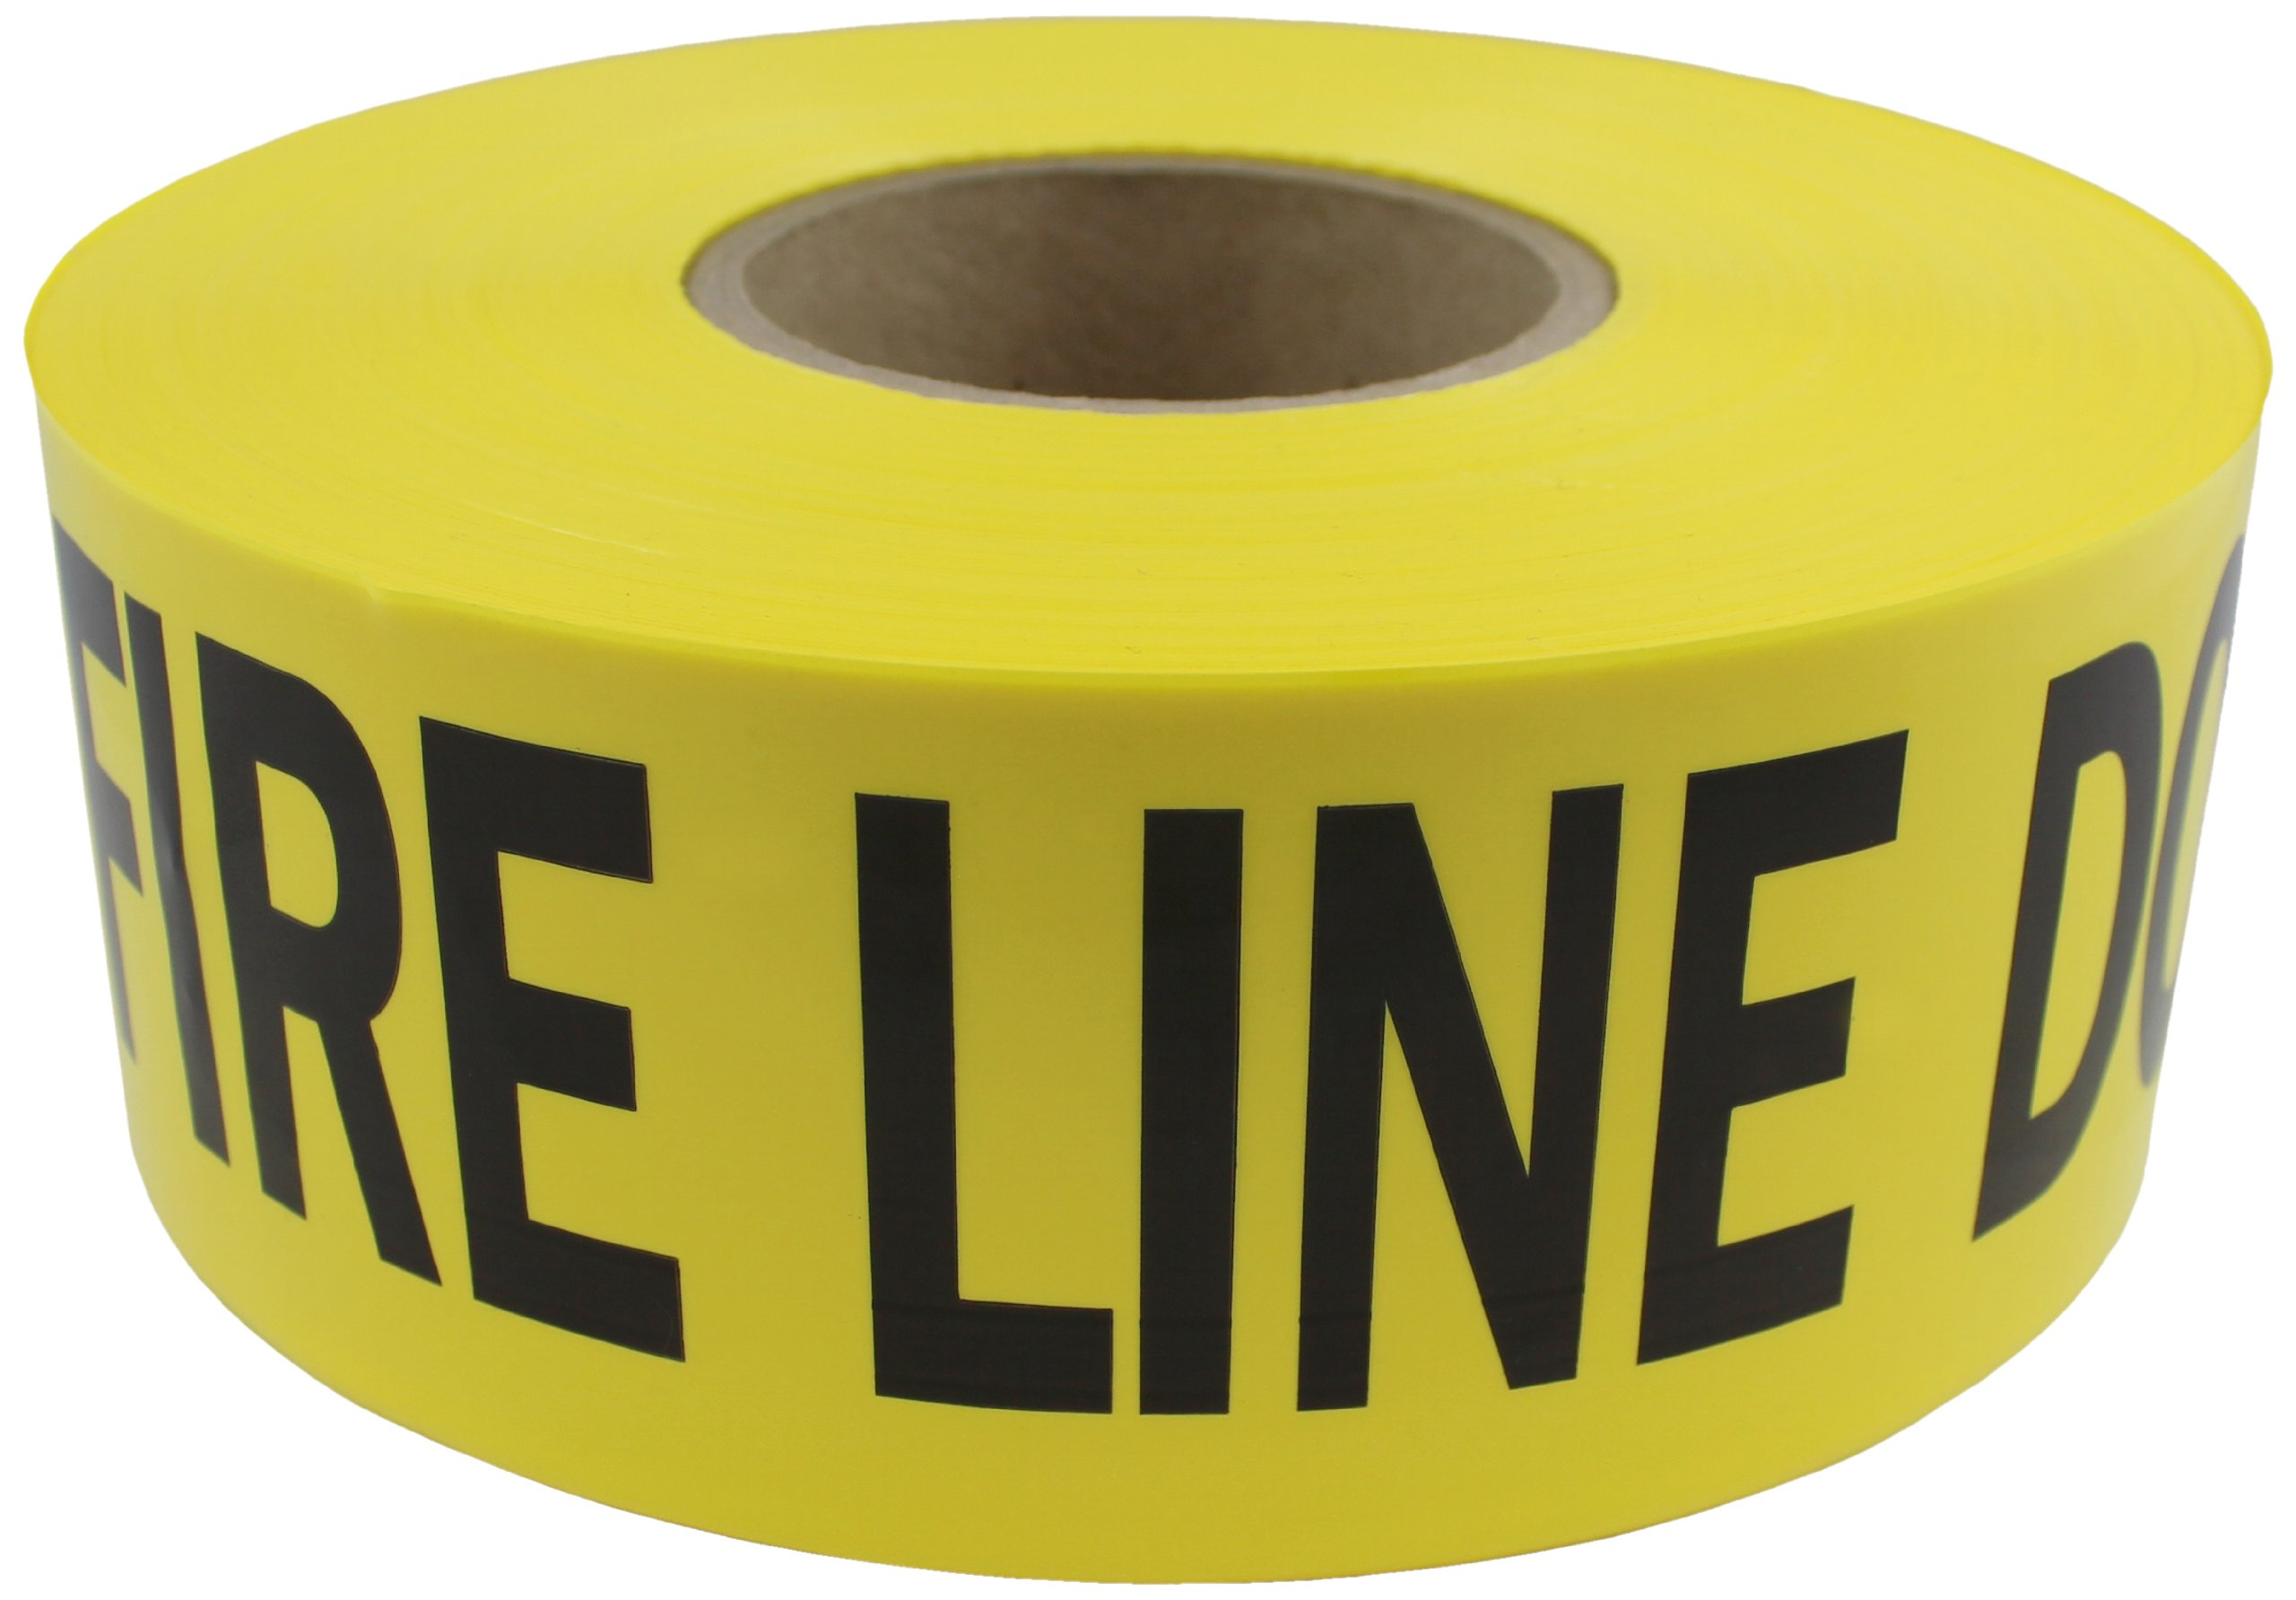 Presco B31022Y15-658 1000' Length x 3'' Width x 2.5 mil Thick, Polyethylene, Yellow with Black Ink Barricade Tape, Legend Fire Line Do Not Cross (Pack of 8)